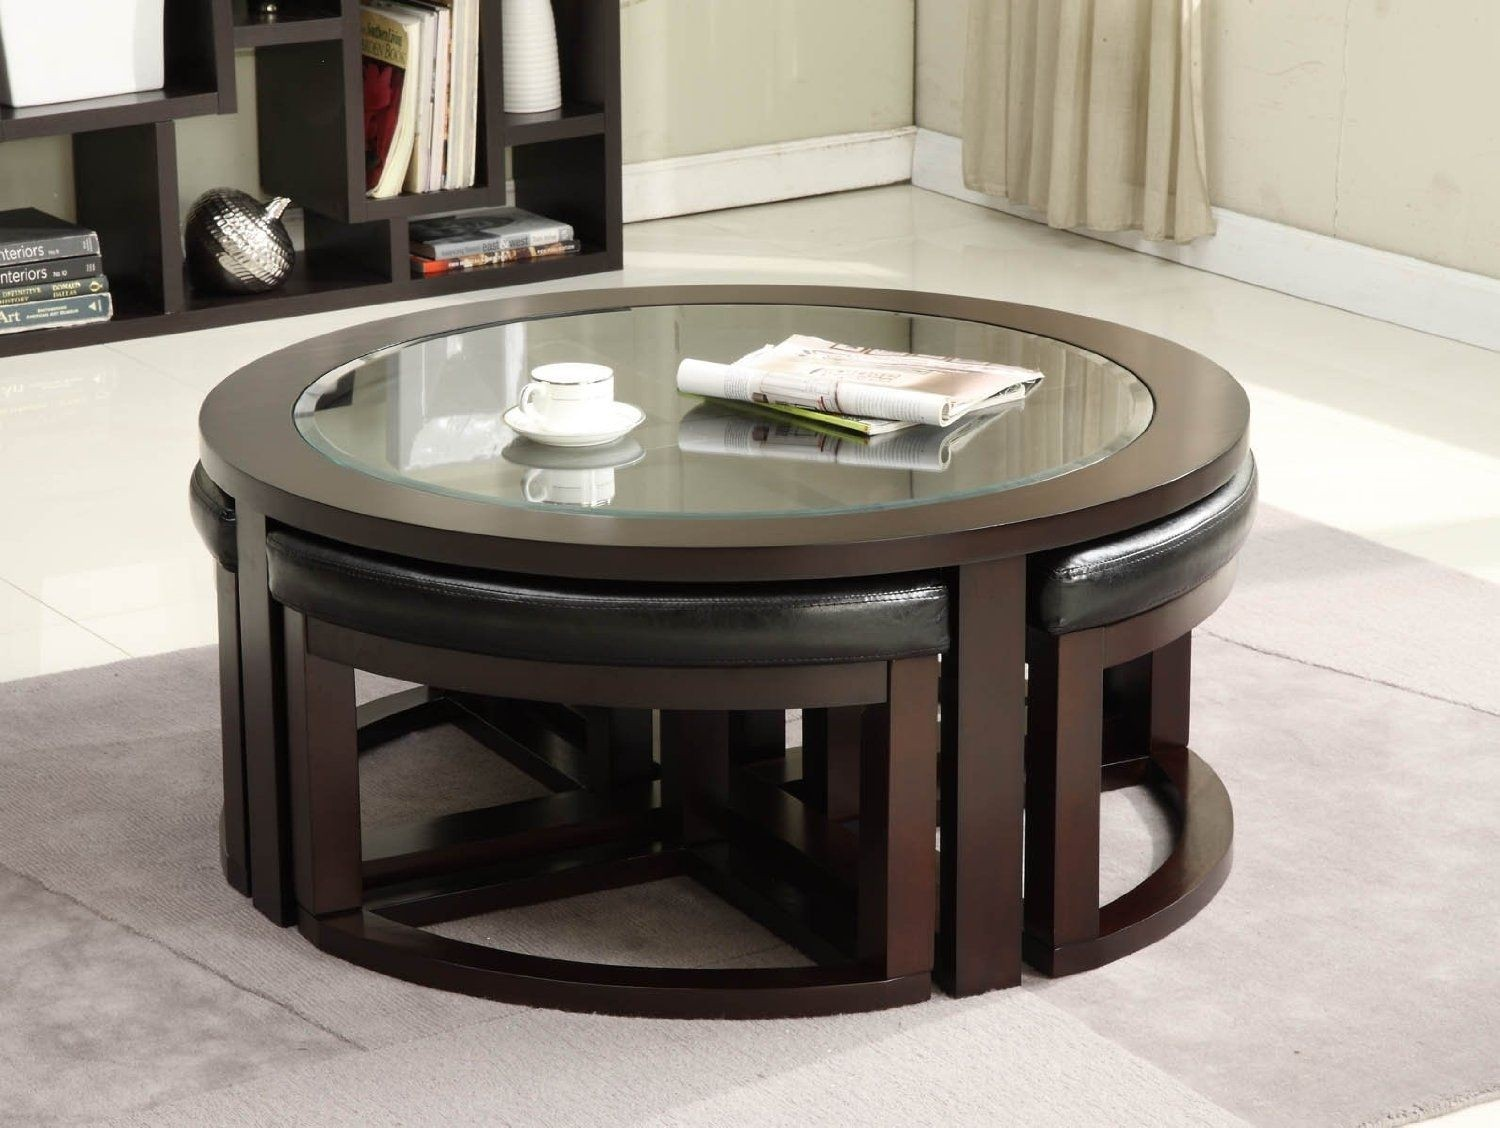 Round Cocktail Table With 4 Stools